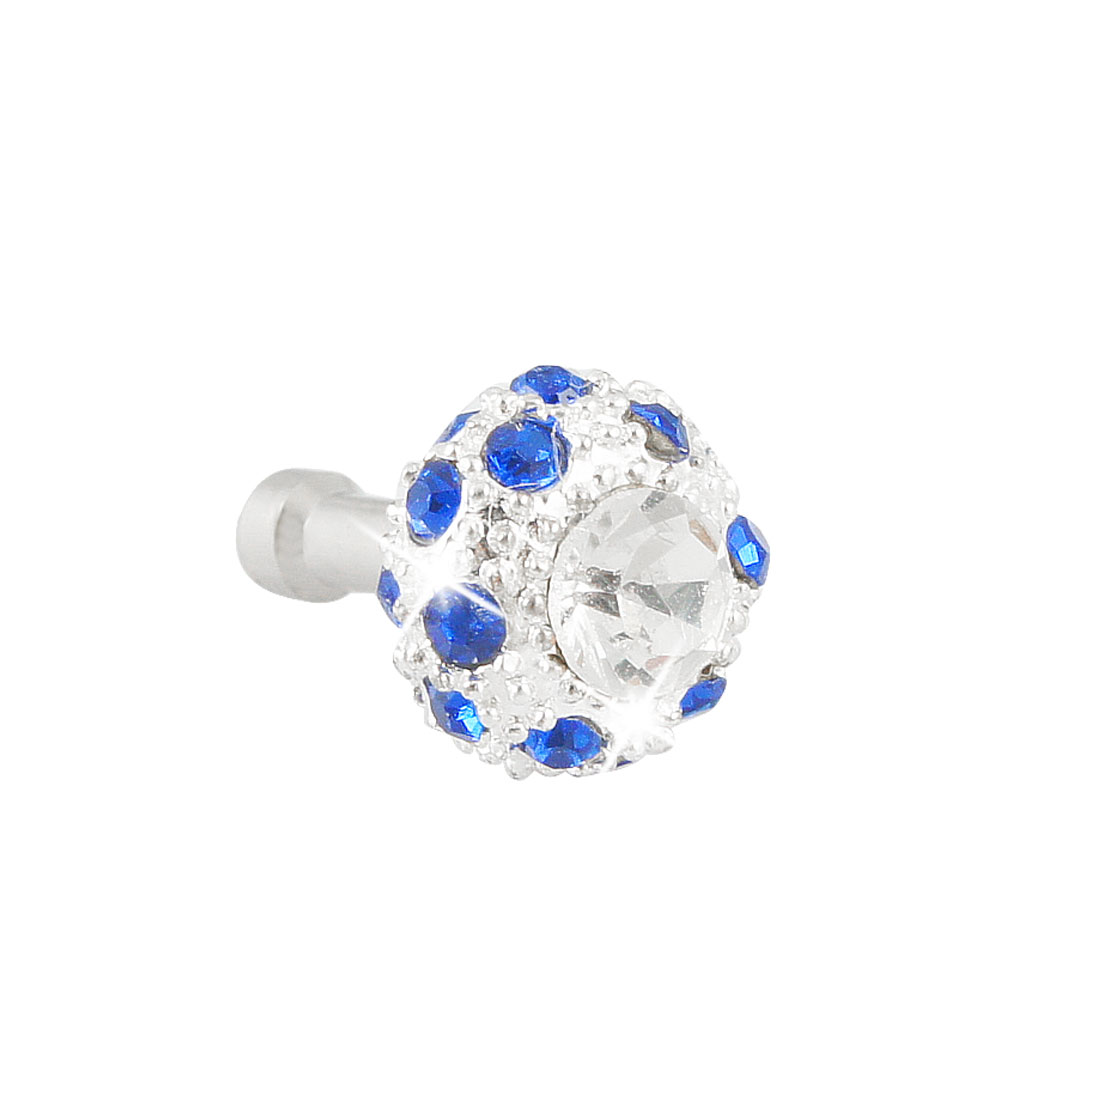 Cellphone Laptop Bling Royal Blue Crystal 3.5mm Earphone Anti Dust Stopper